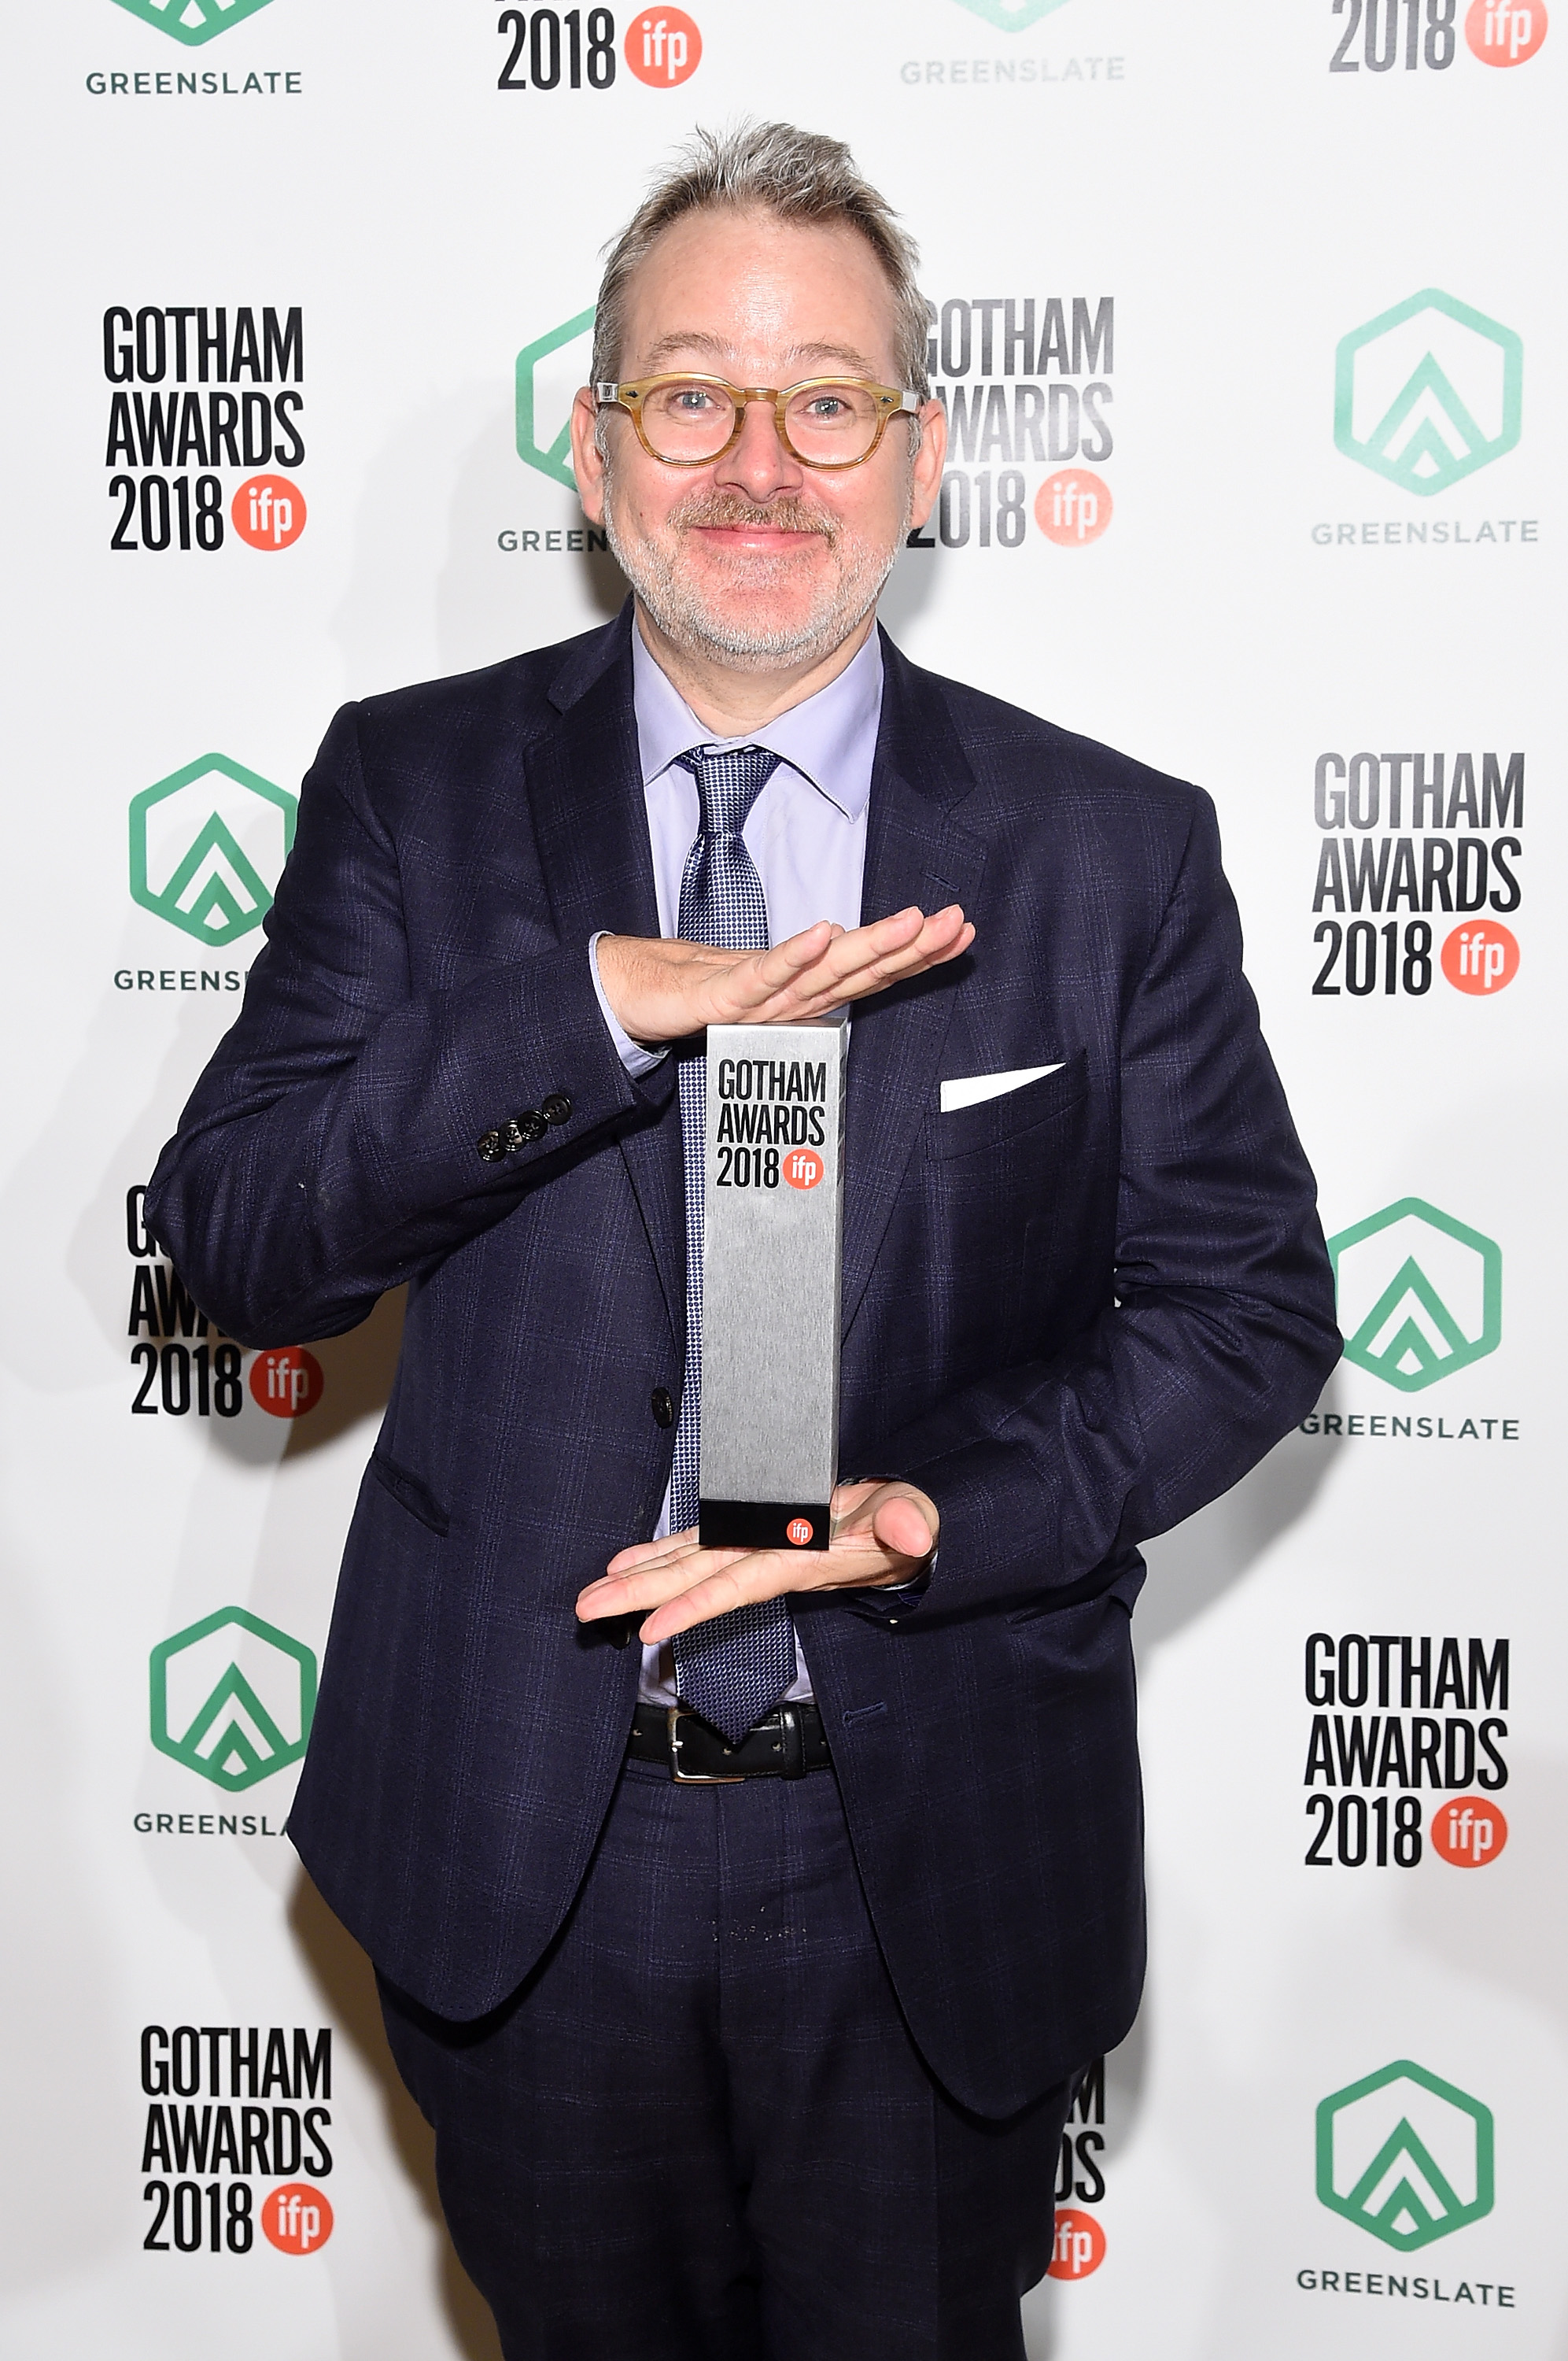 Morgan Neville backstage in the GreenSlate Greenroom during IFP's 28th Annual Gotham Independent Film Awards at Cipriani, Wall Street on November 26, 2018 in New York City.